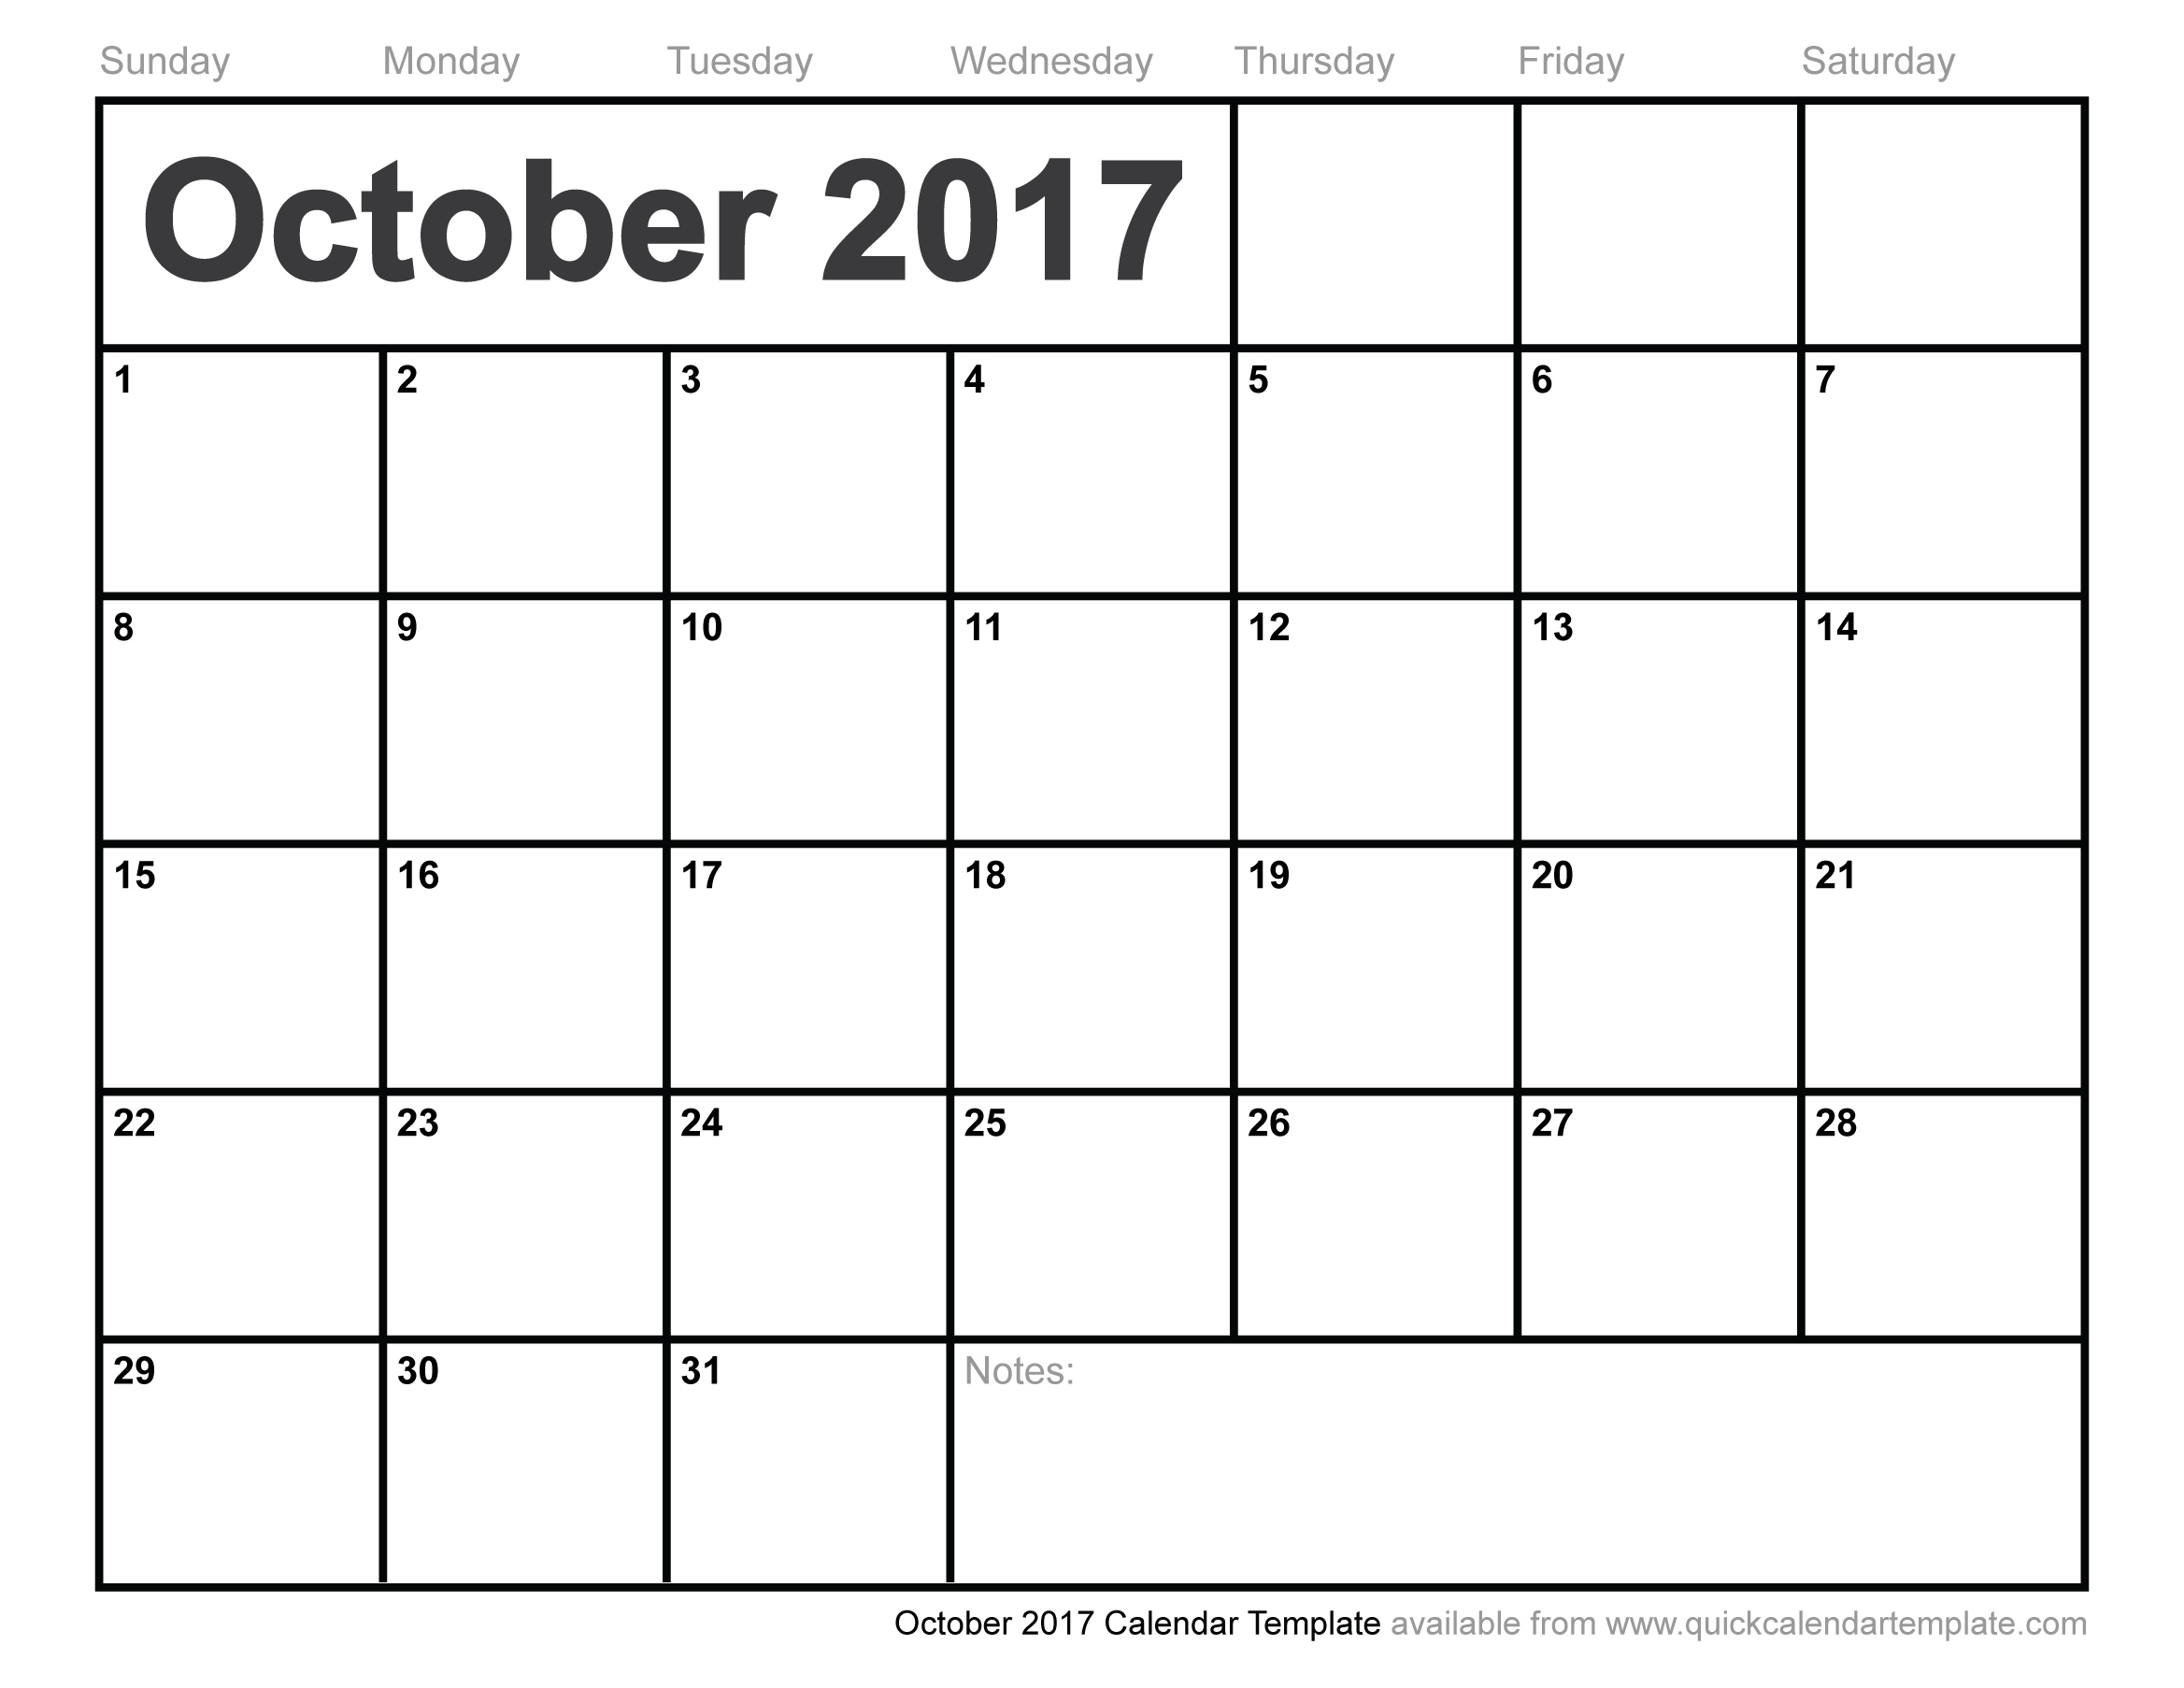 October 2017 Calendar Cute | weekly calendar template